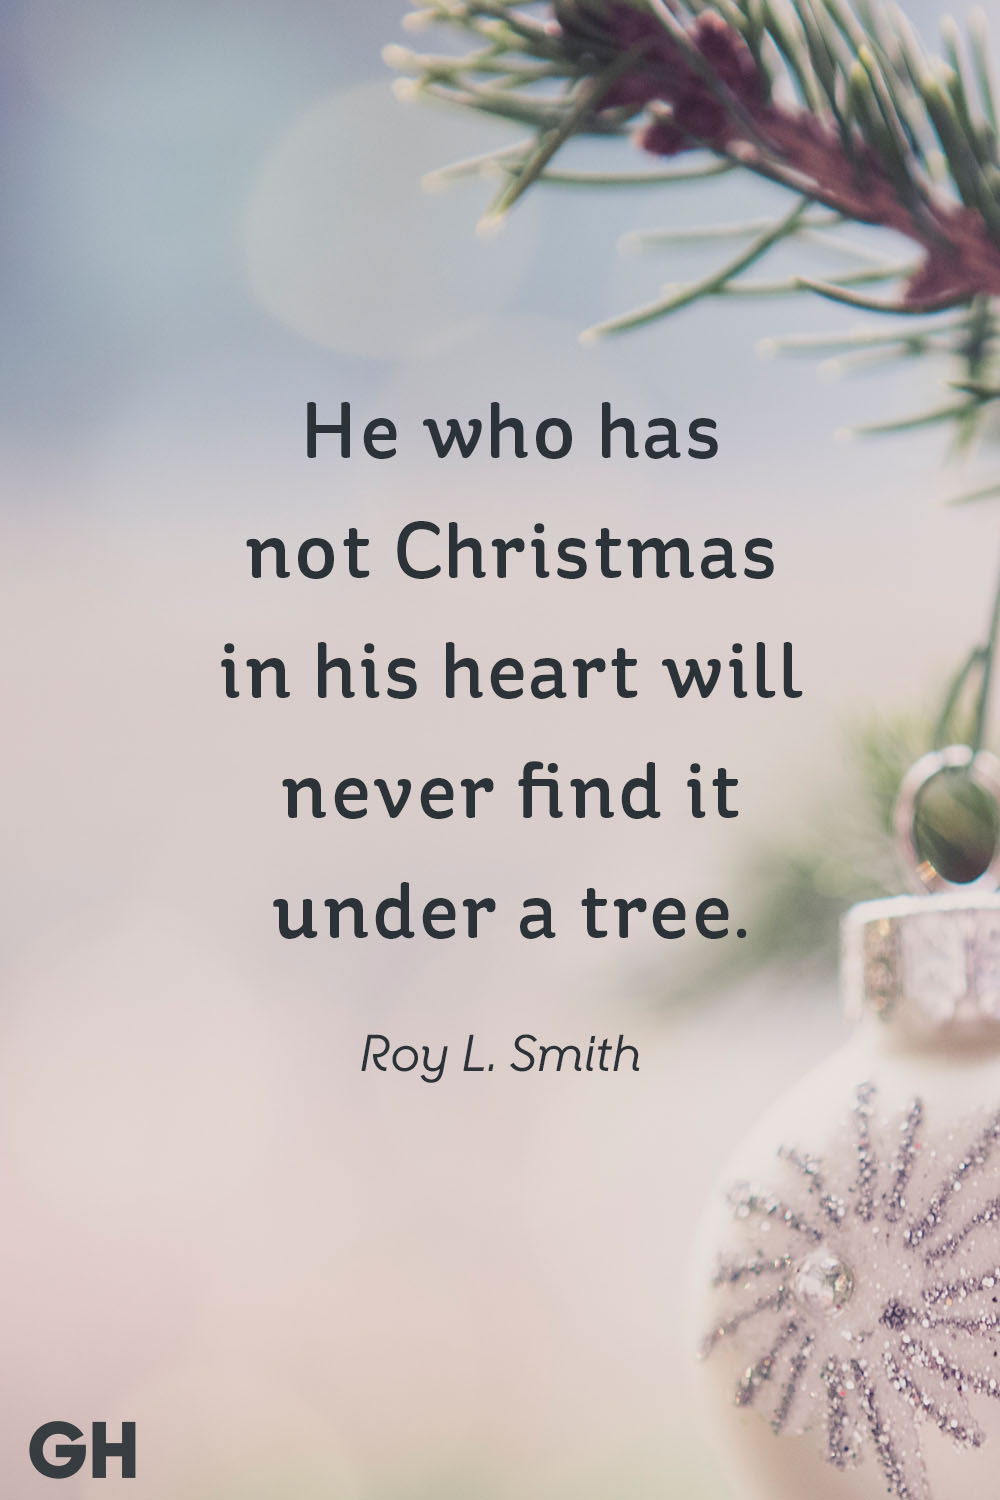 Famous Quotes By Authors About Life 27 Best Christmas Quotes Of All Time  Festive Holiday Sayings